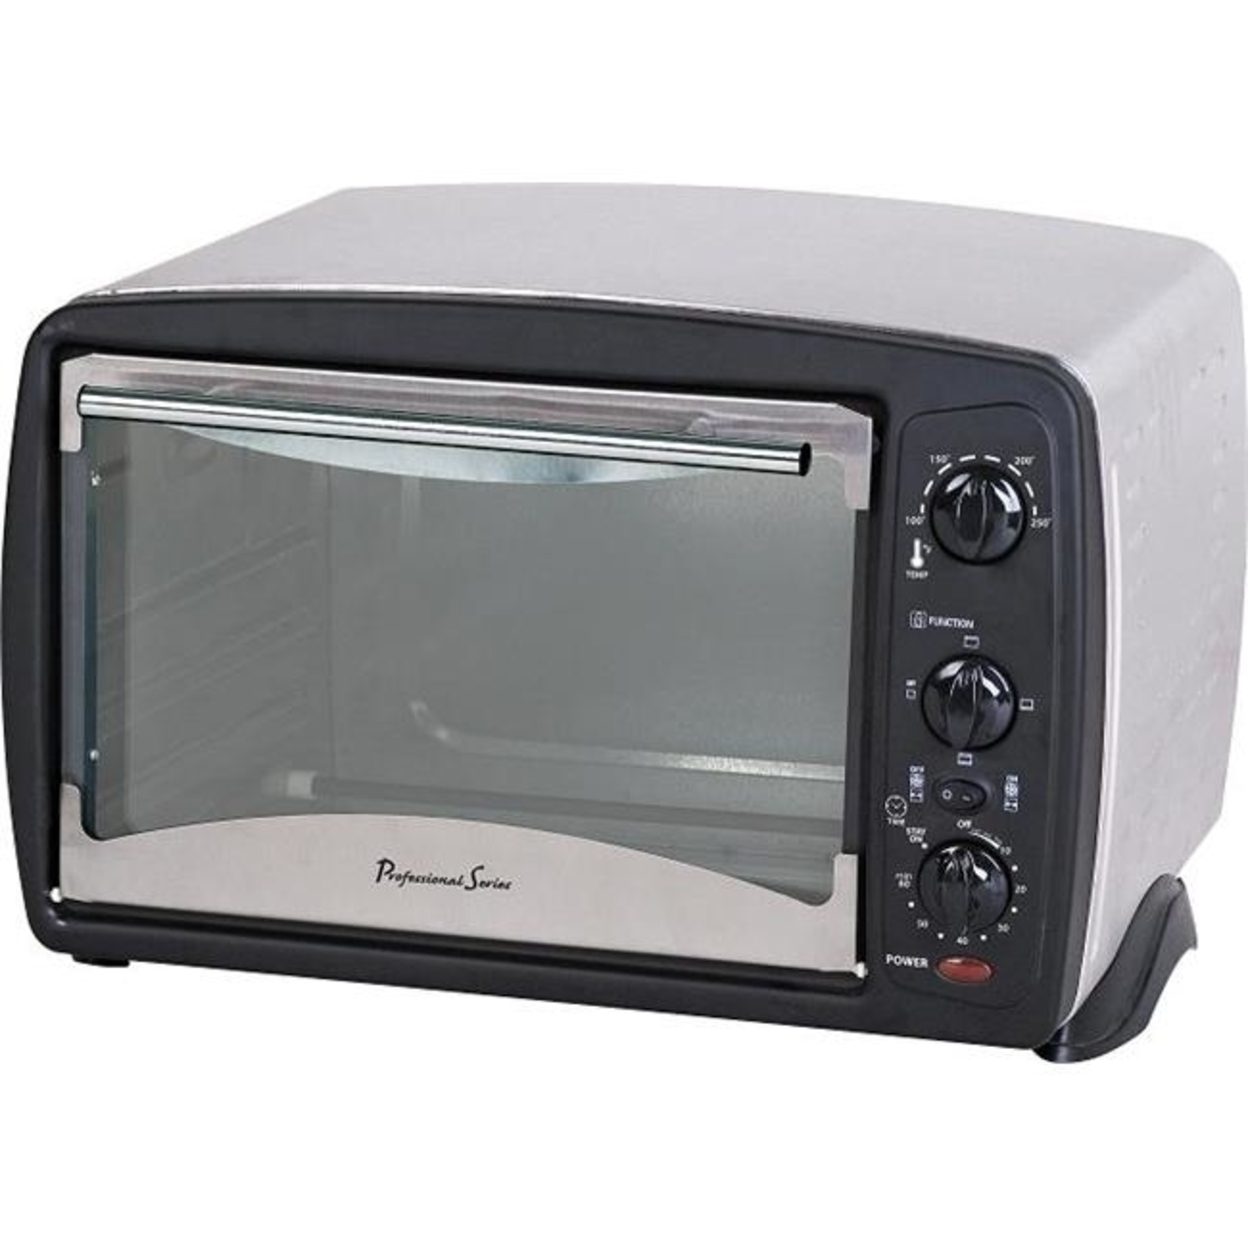 Continental Electric Ps77581 6 Slice Rotisserie & Convection Oven 5a413024e2246102a1606e1b